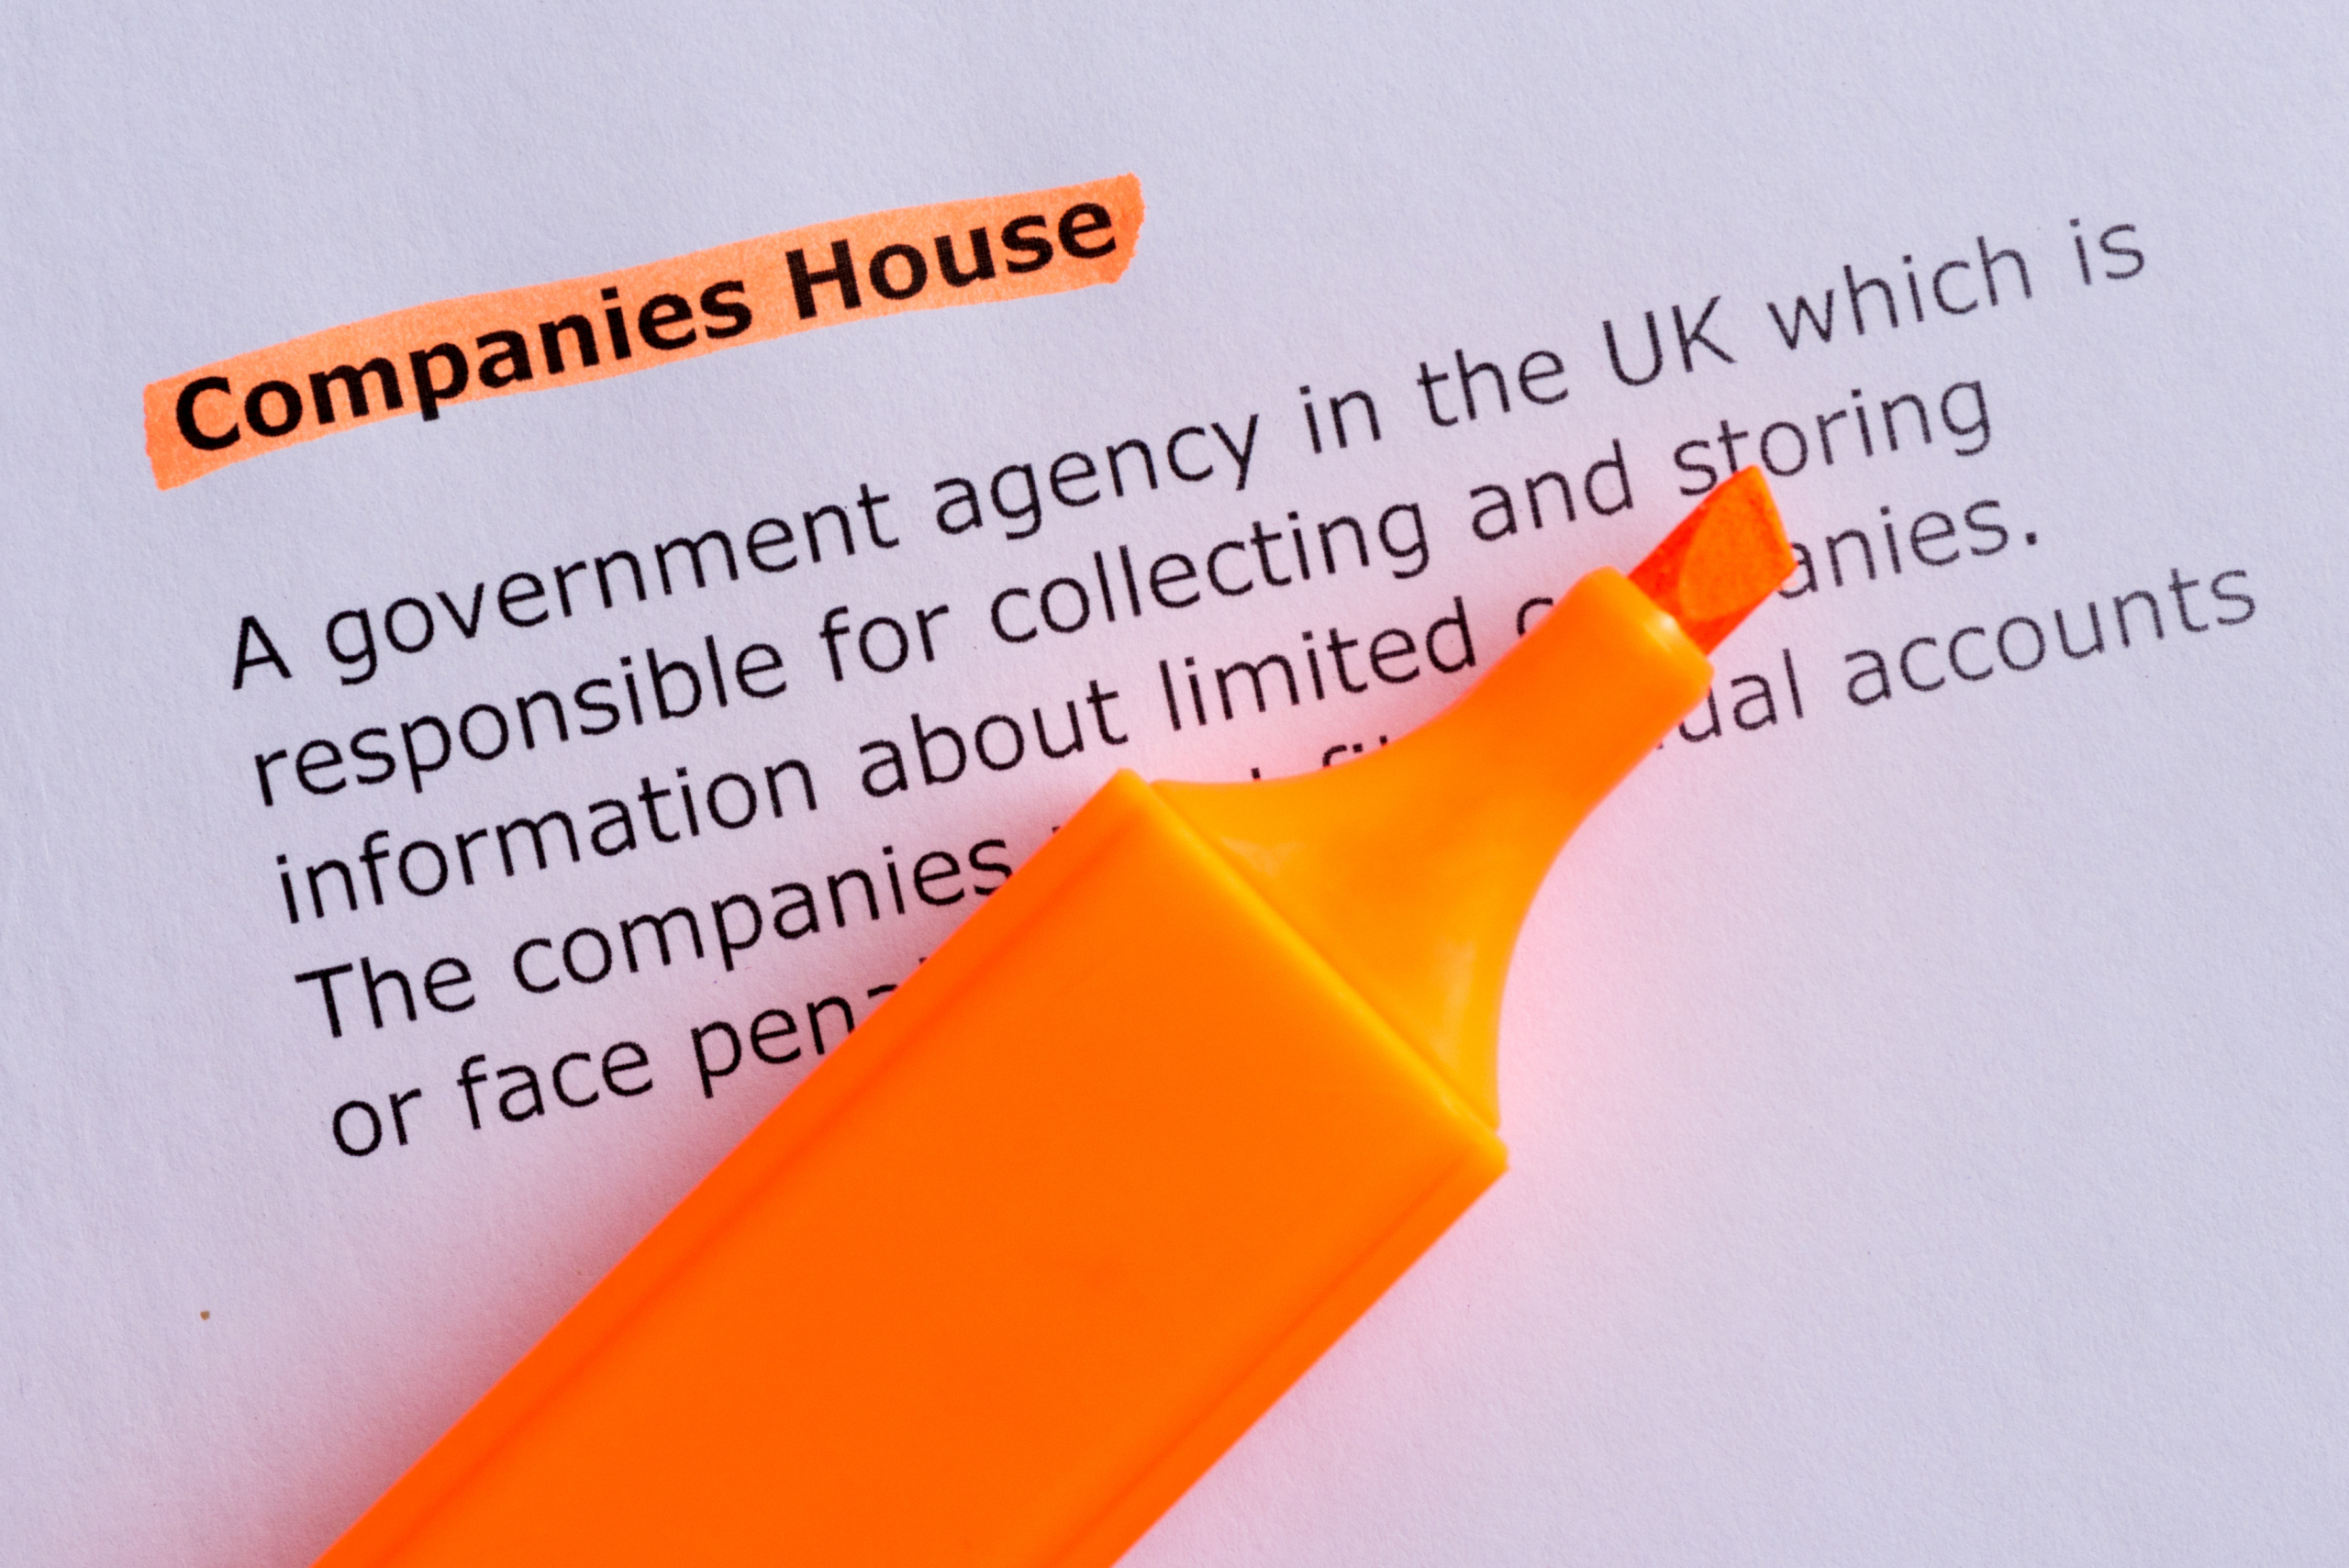 Reforms to Companies House to clamp down on fraud